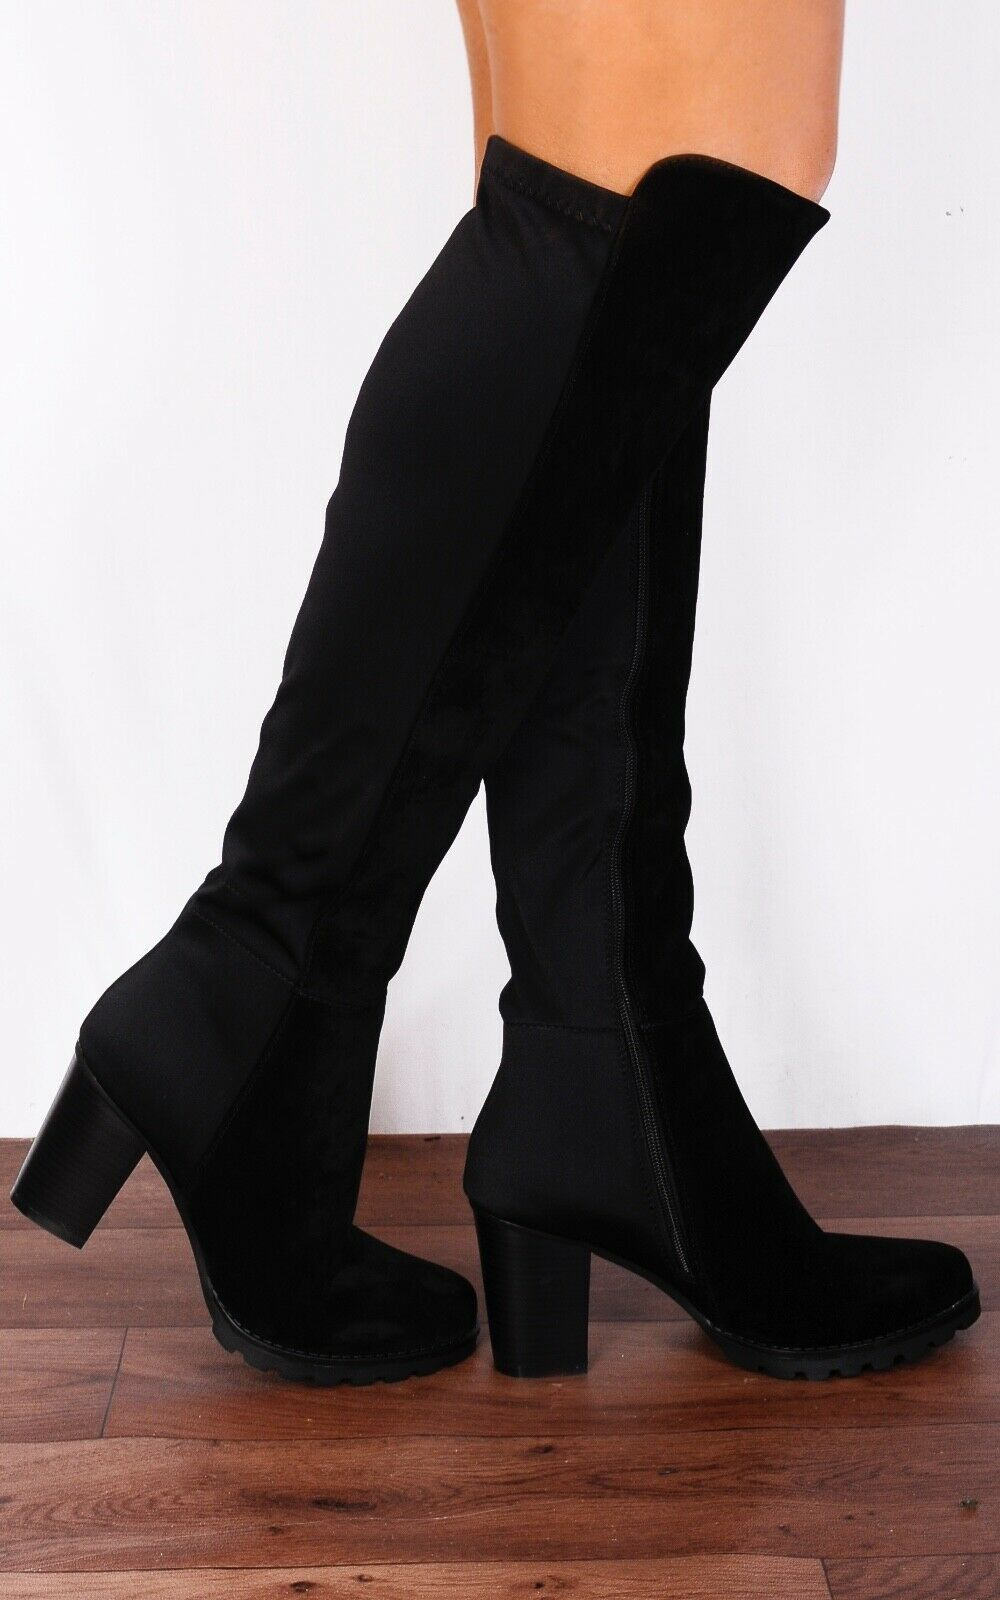 BLACK ELASTICATED CLEATED PLATFORMS KNEE HIGH BLOCKED HEELED ANKLE BOOTS SHOES